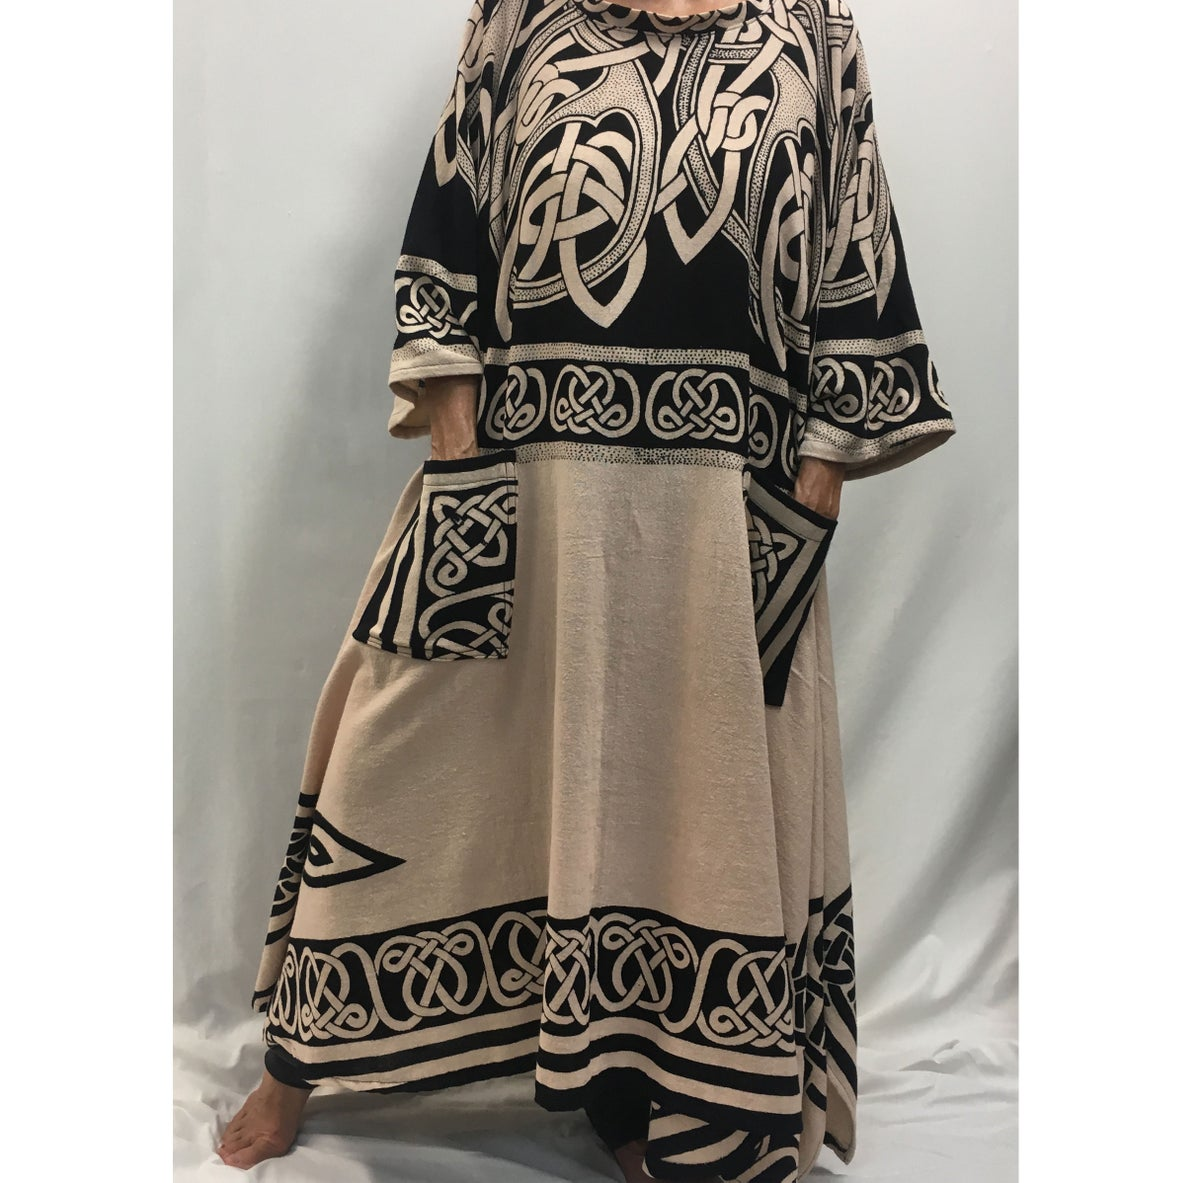 Image of Handwoven Cotton  Dress/Caftan